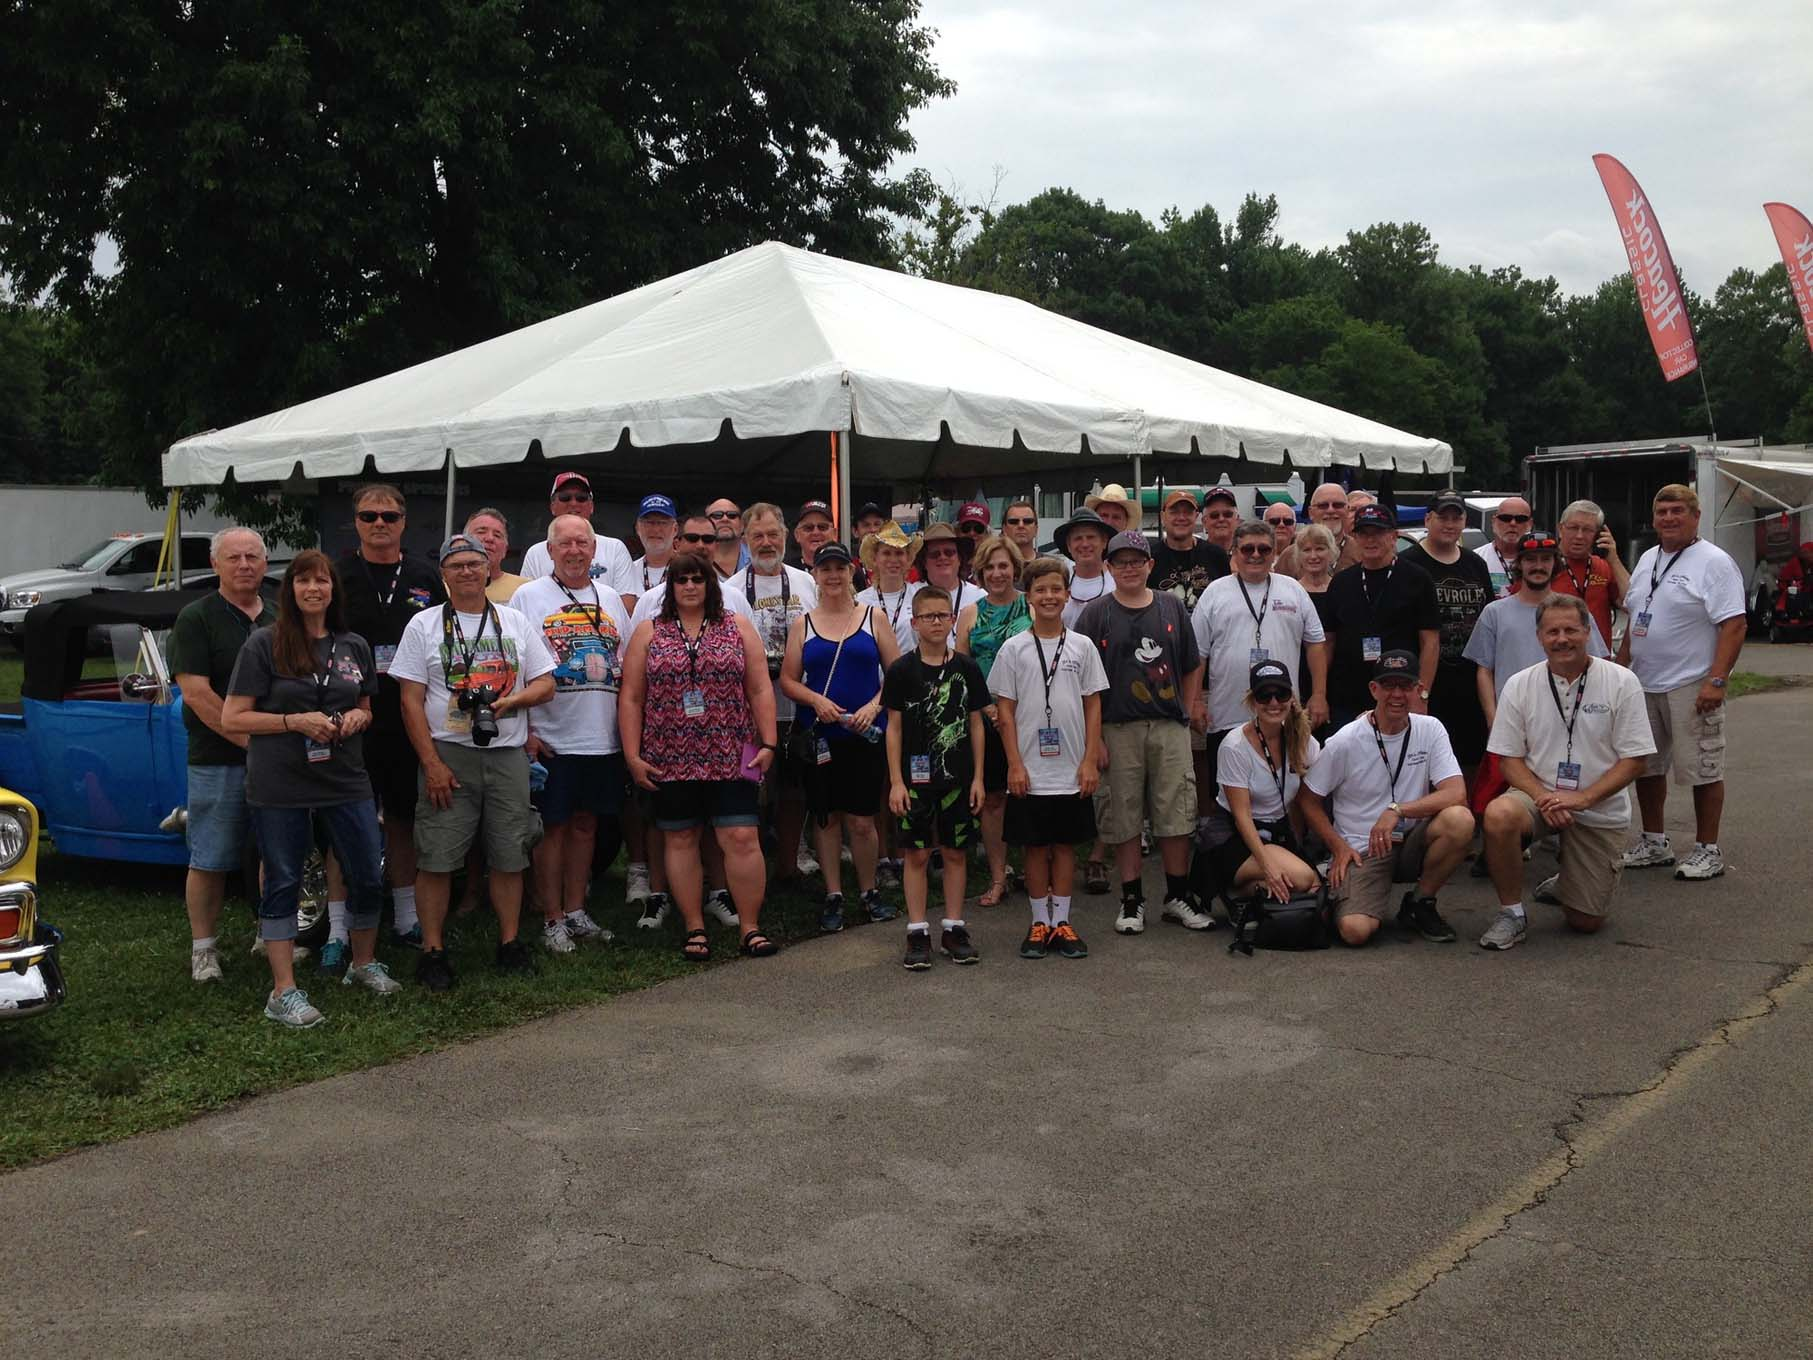 It was a tired but happy throng that gathered for the group photo on Friday afternoon. The Vintage Air Tour is always one of the largest of the season and Jack and Rick have a loyal following from the Lone Star State.